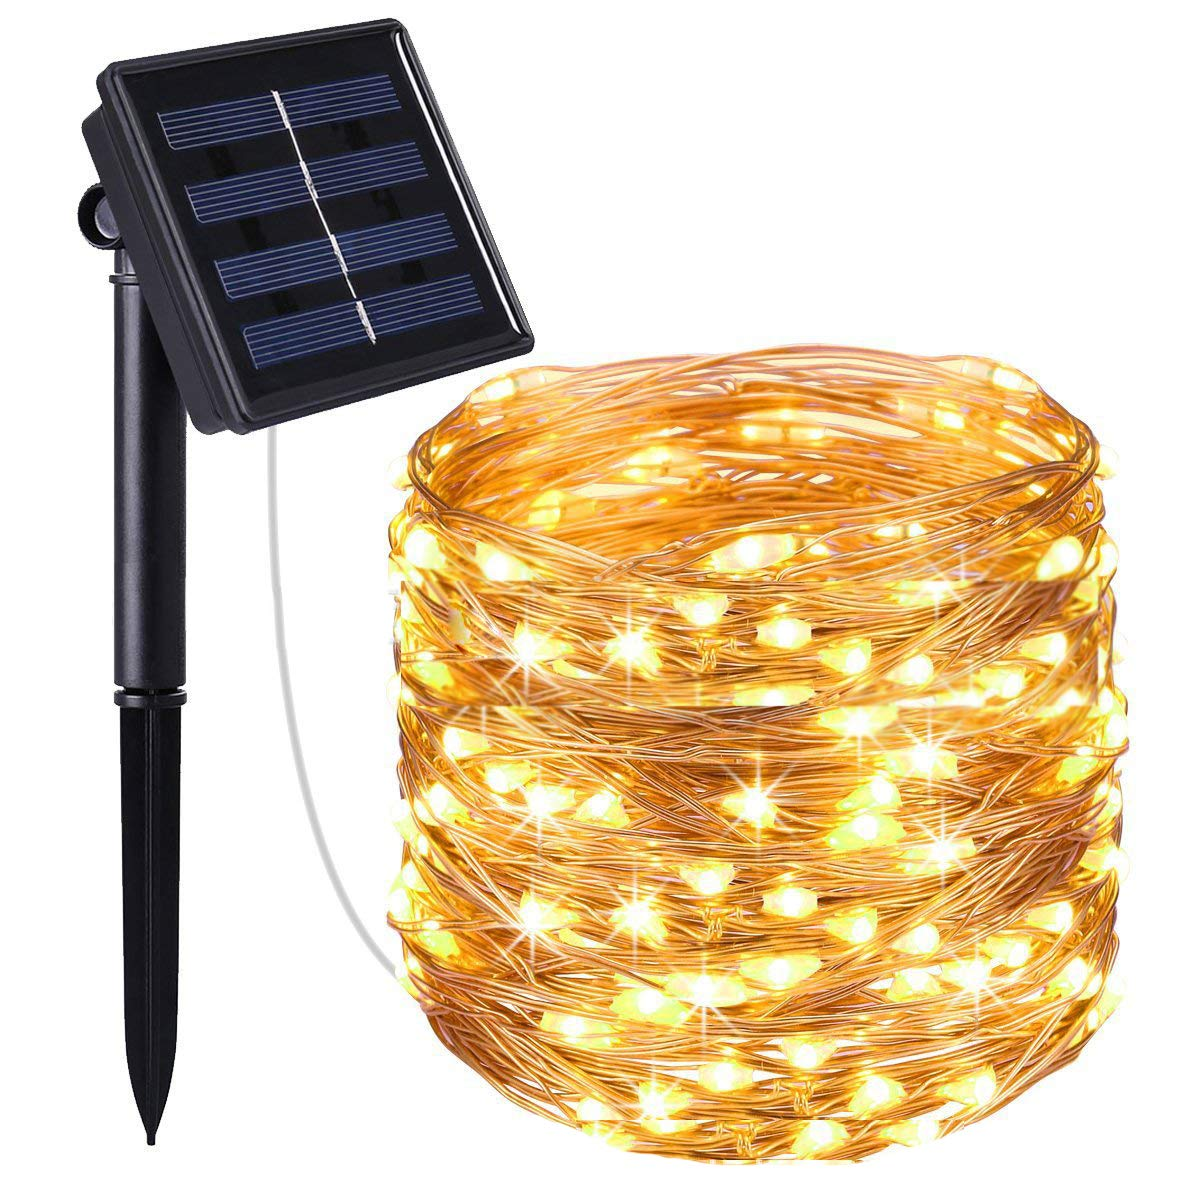 Nittelights Solar Powered String Lights,100 LED Copper Wire Lights,Starry String Lights,Waterproof Solar Decoration Lights for Gardens,Home,Dancing,Party Decorative(Warm White)